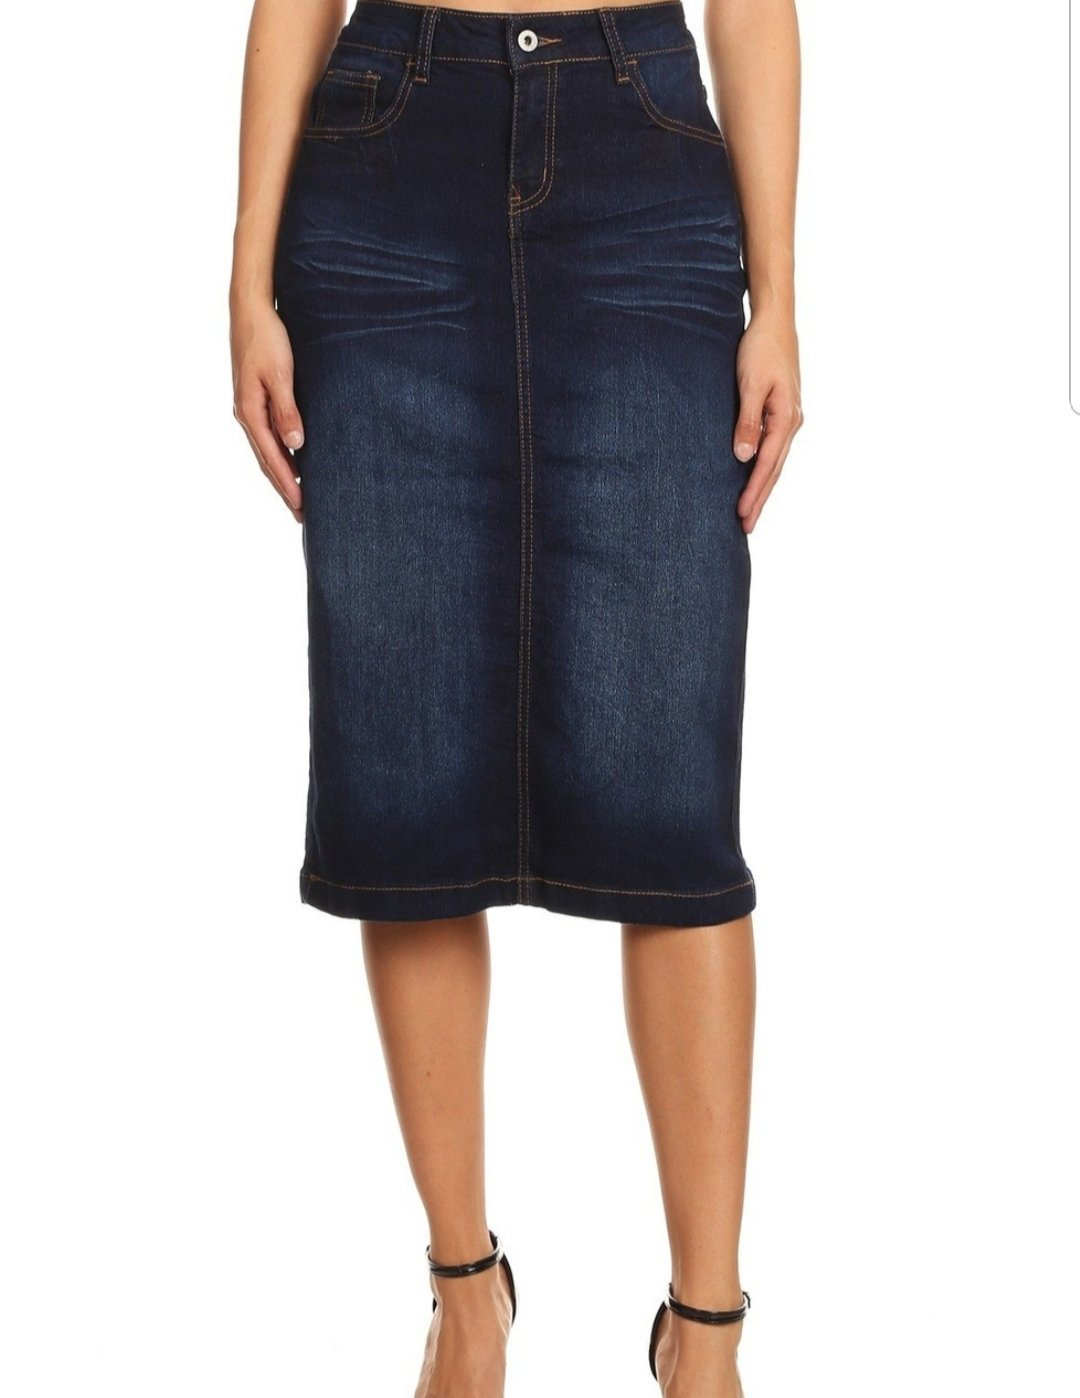 #77239 Calf Length Dark Indigo Wash Denim Skirt